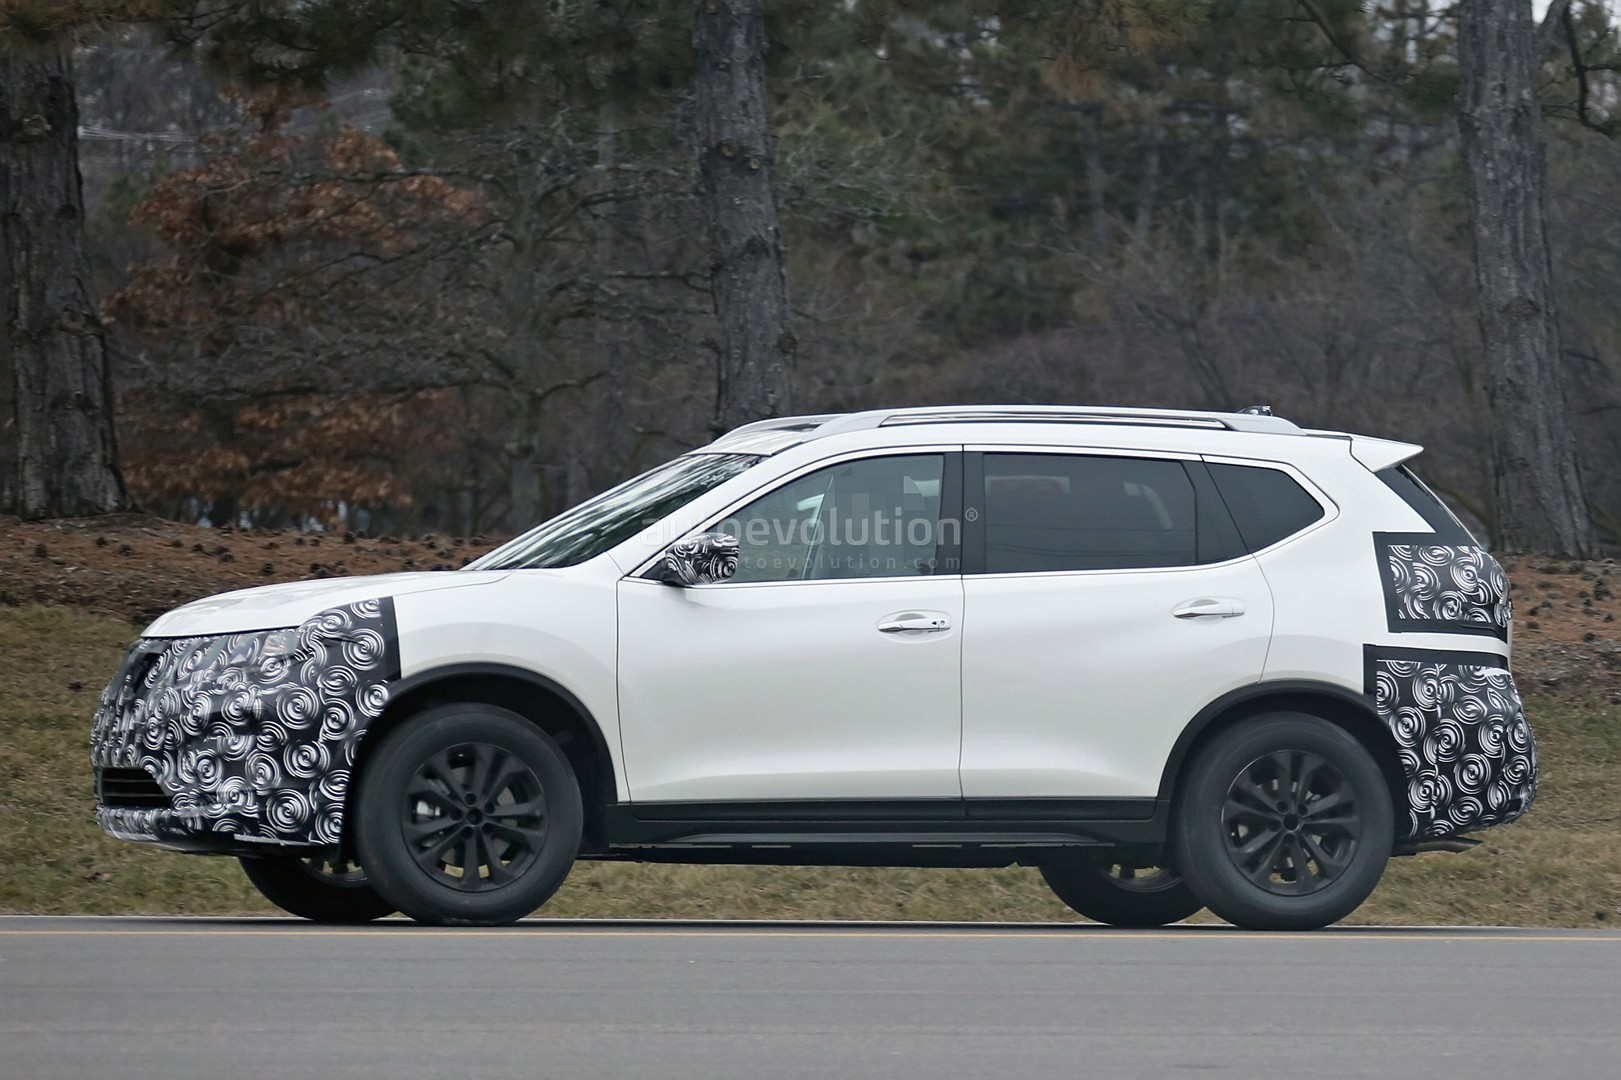 2017 Nissan Rogue Spied with Cosmetic Updates - autoevolution